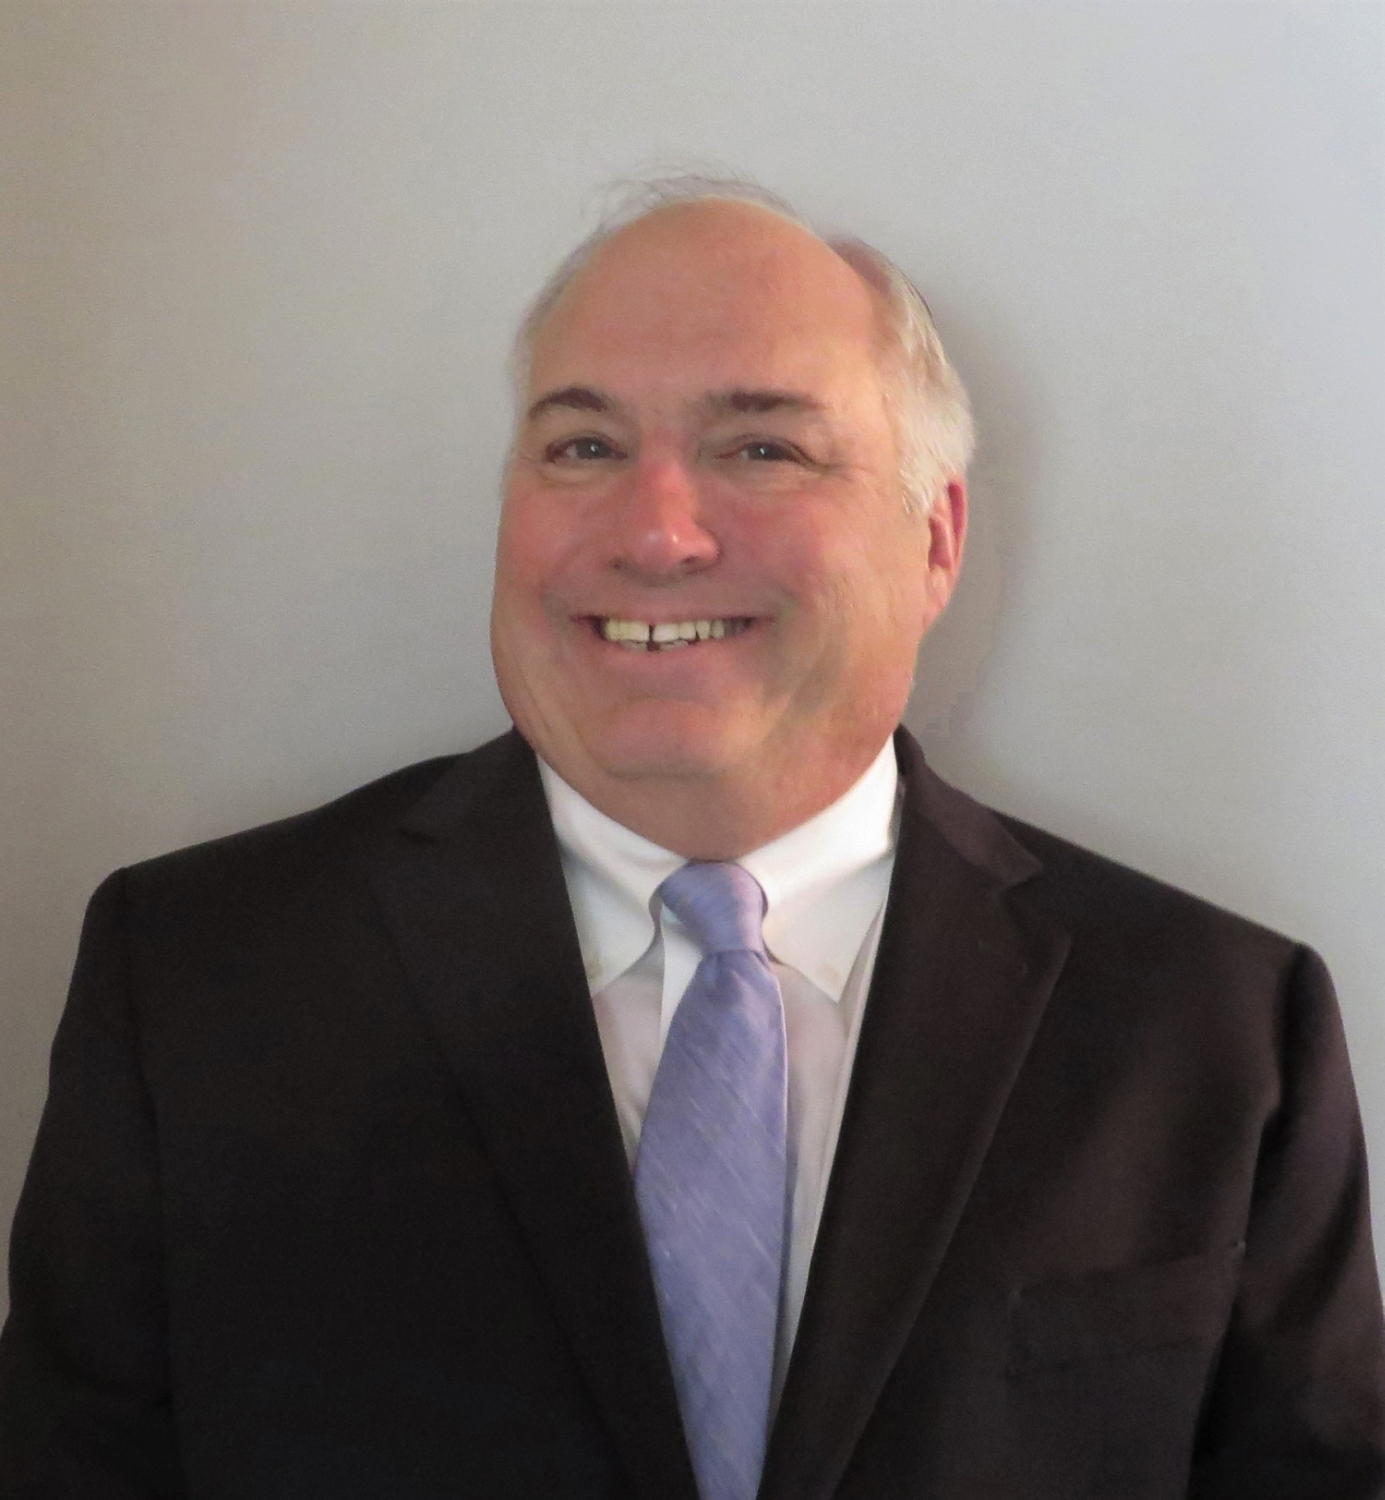 Mike Simunic is the new chief operating officer at LTA Manufacturing.